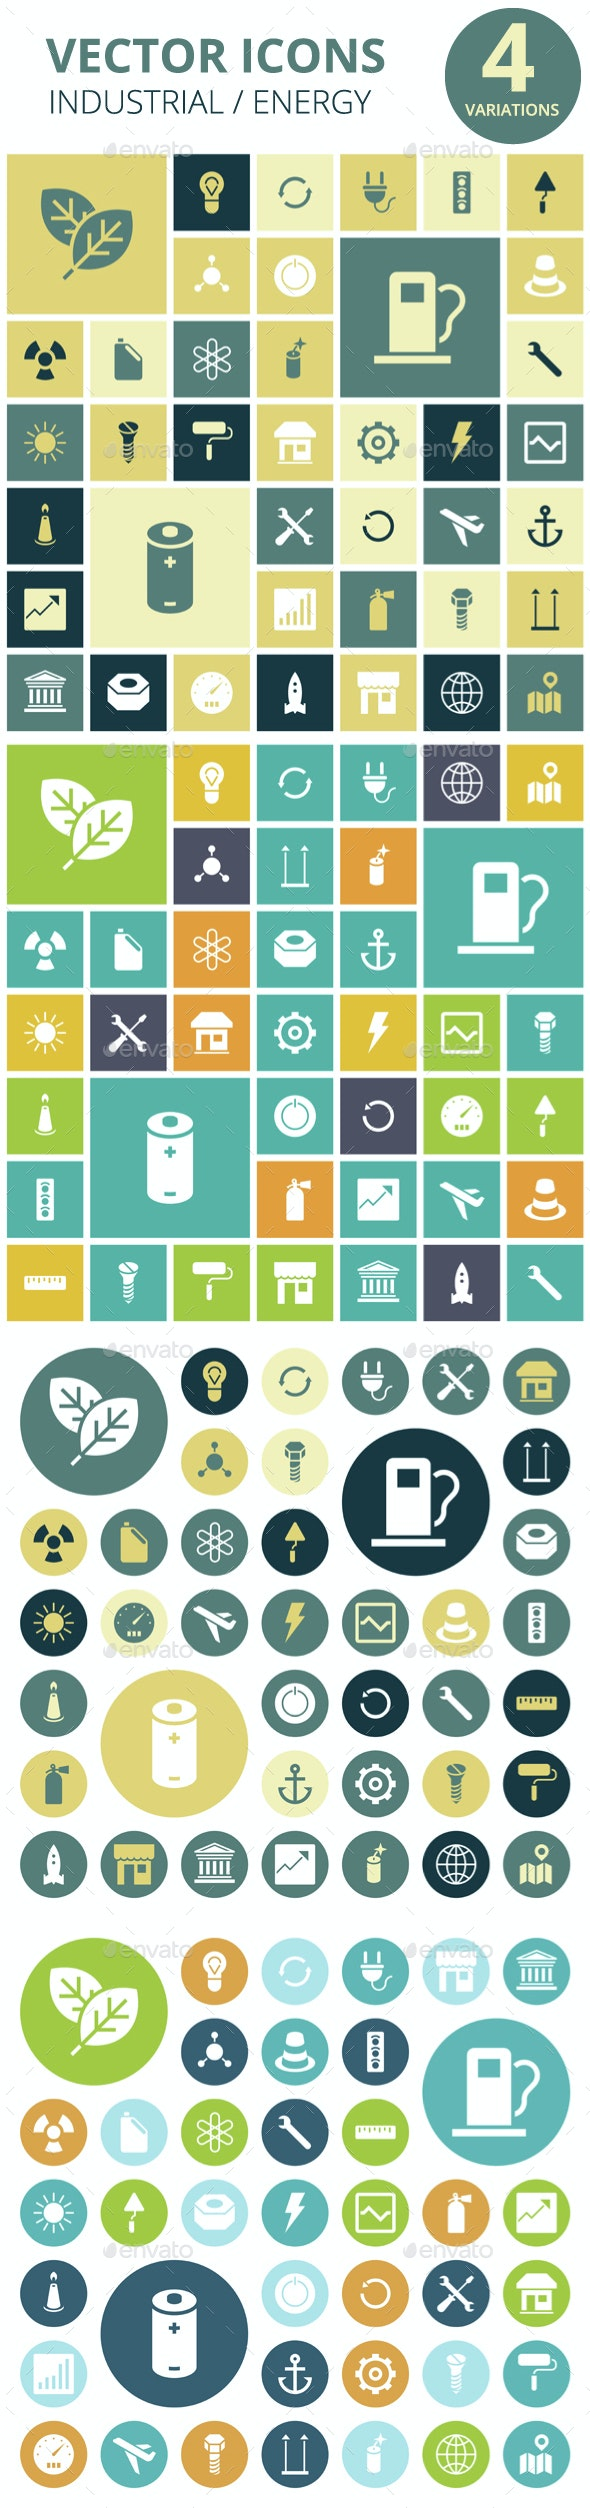 Flat Design Icons for Industrial, Energy and Ecology - Technology Icons